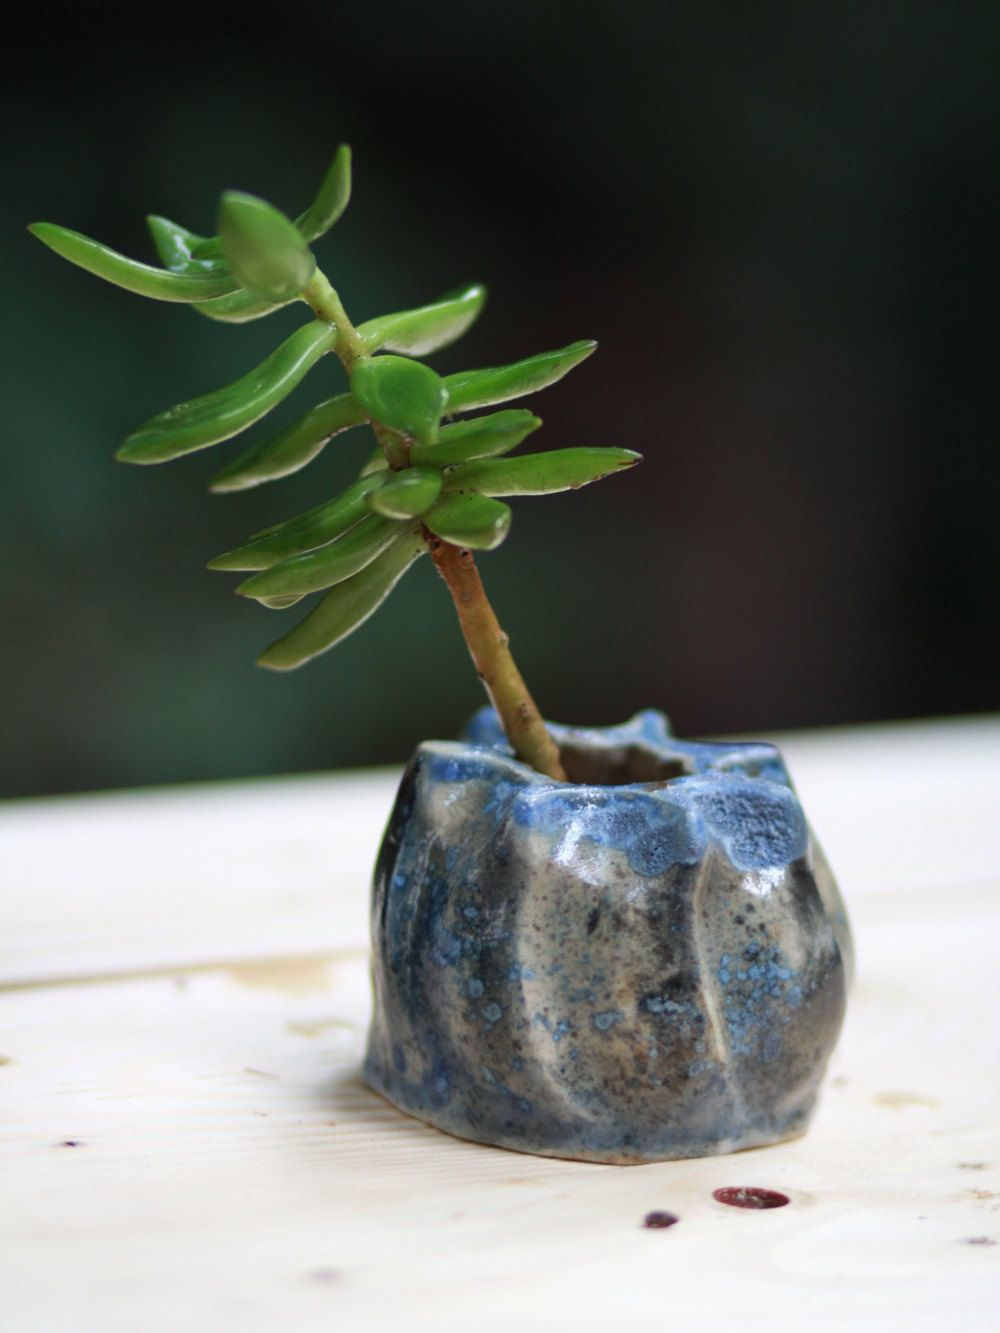 Handmade Planter Mini Sculpture Pot Cactus Bonsai Succulent Home Decor Pottery Unique Gift By Claymycraftstudioa